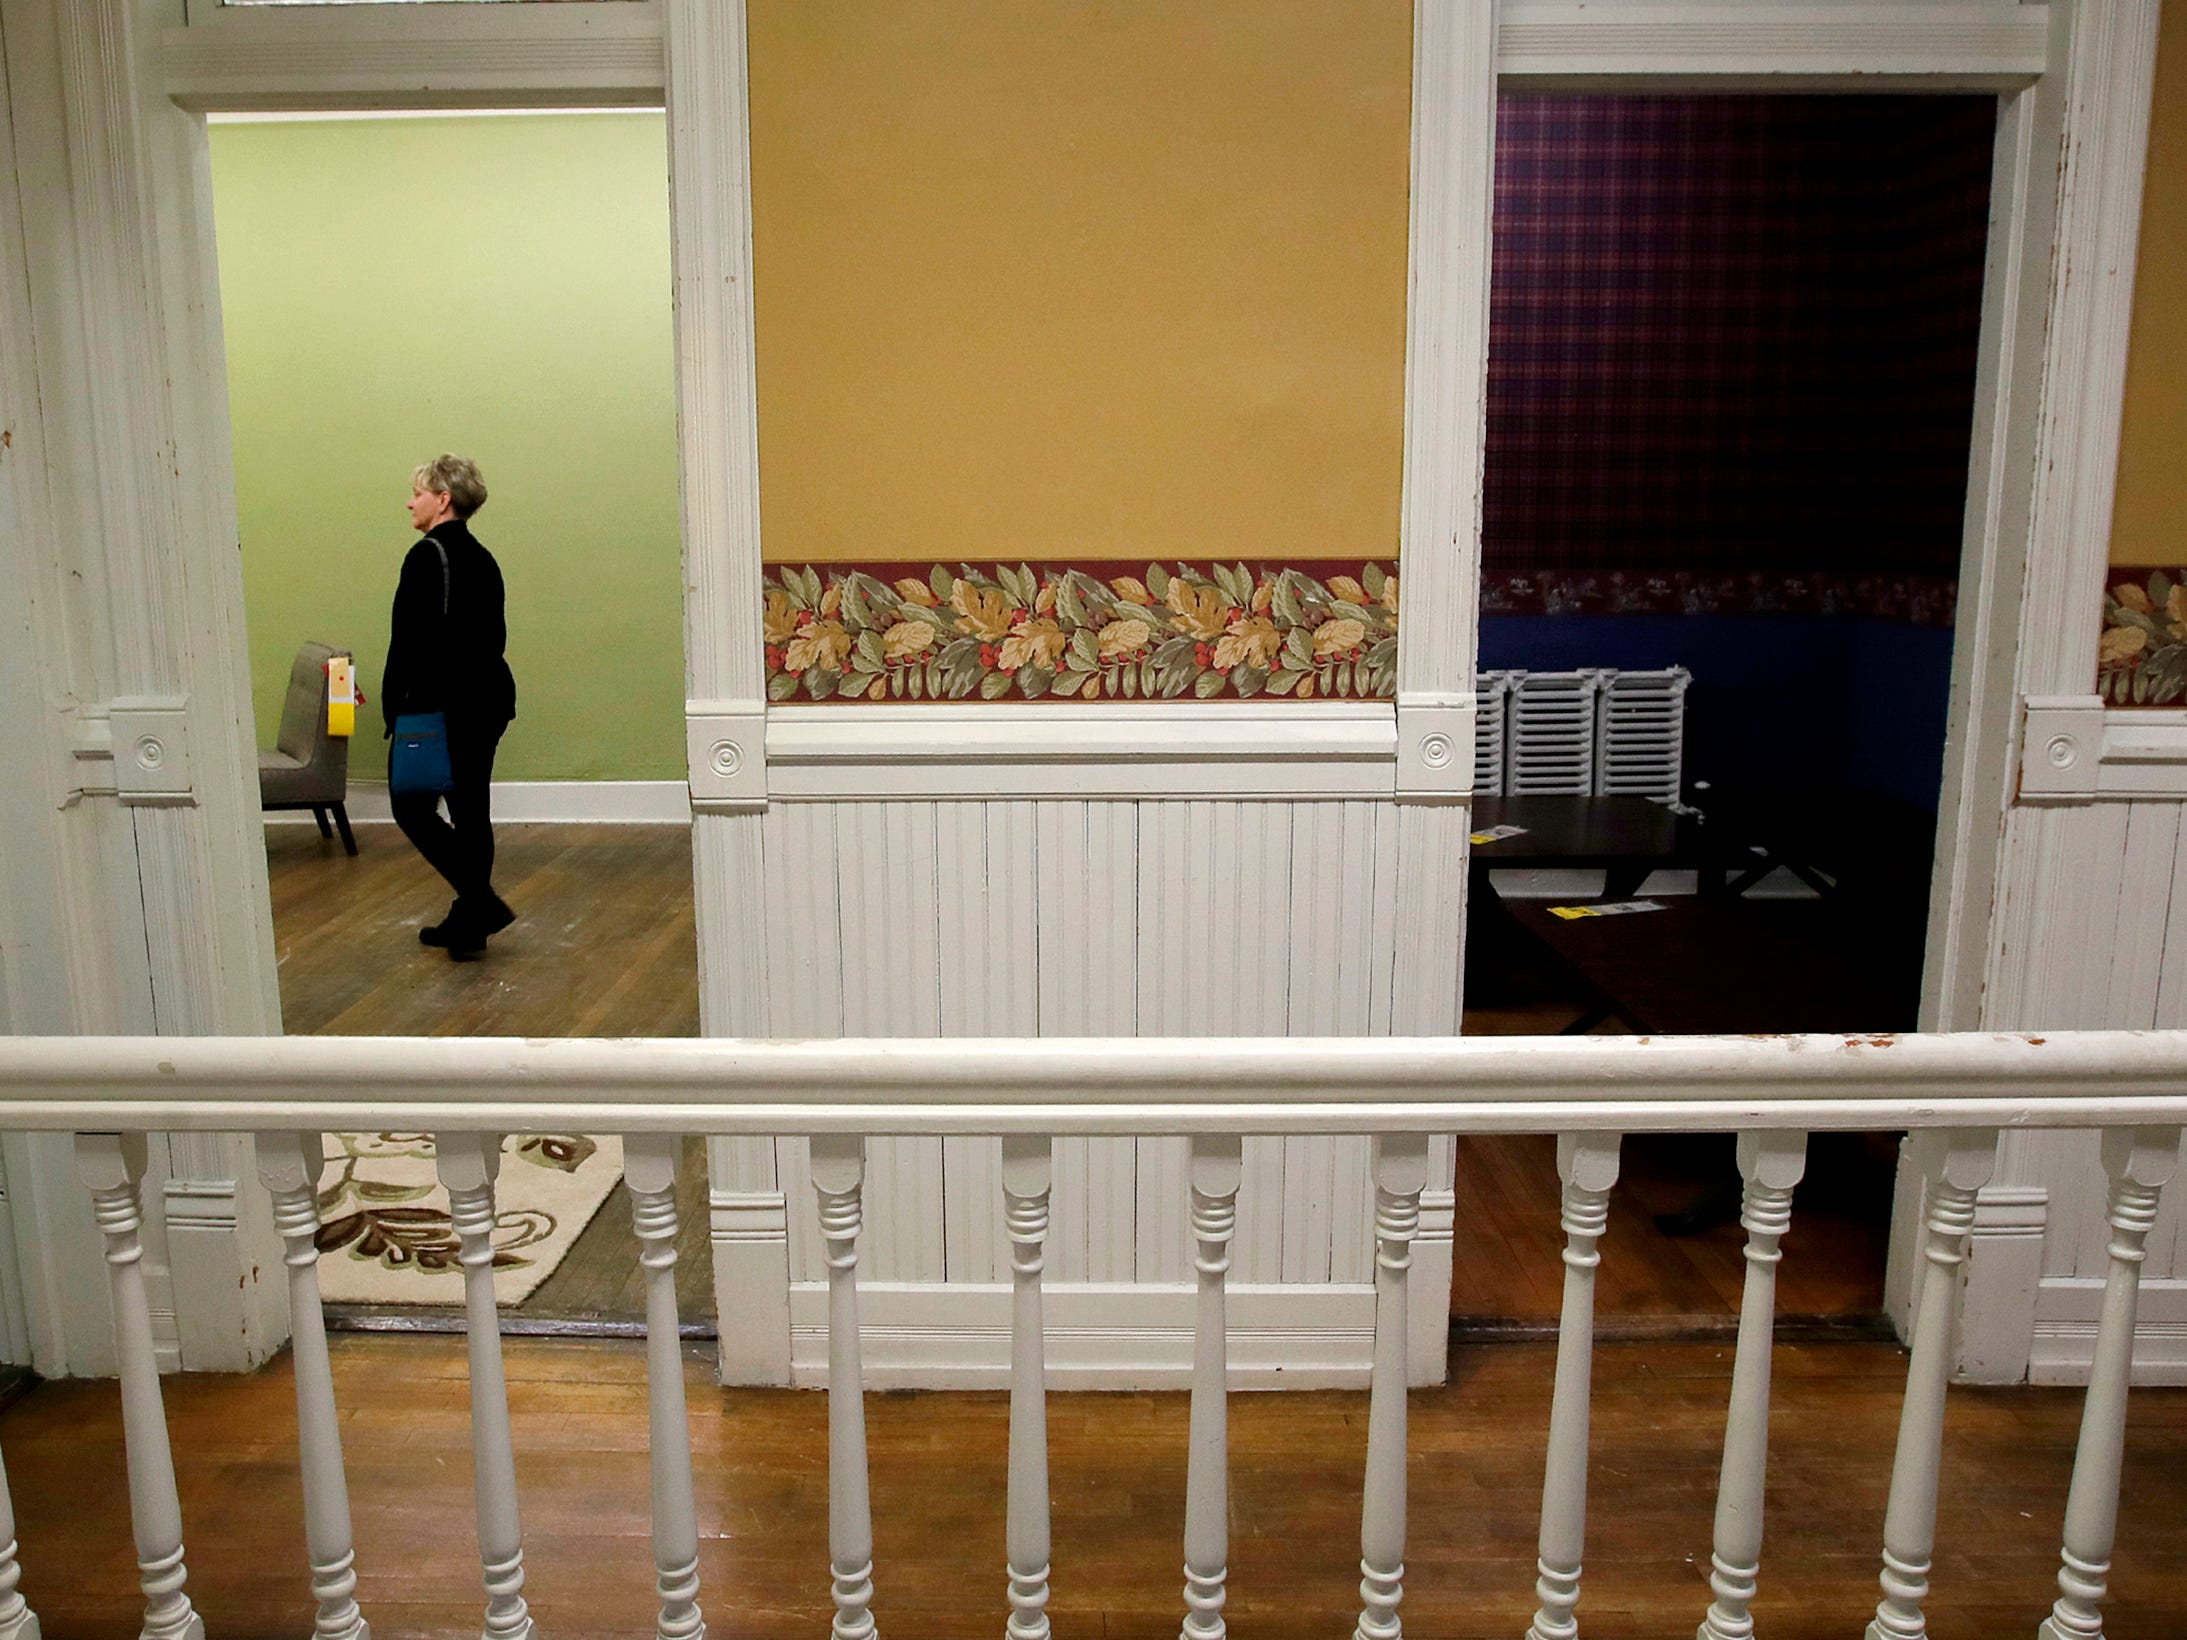 Laura Sinclair, of Appleton, walks through Gabriel Furniture Thursday, April 18, 2019, in Appleton, Wis. The building that houses the furniture store was built in 1888.